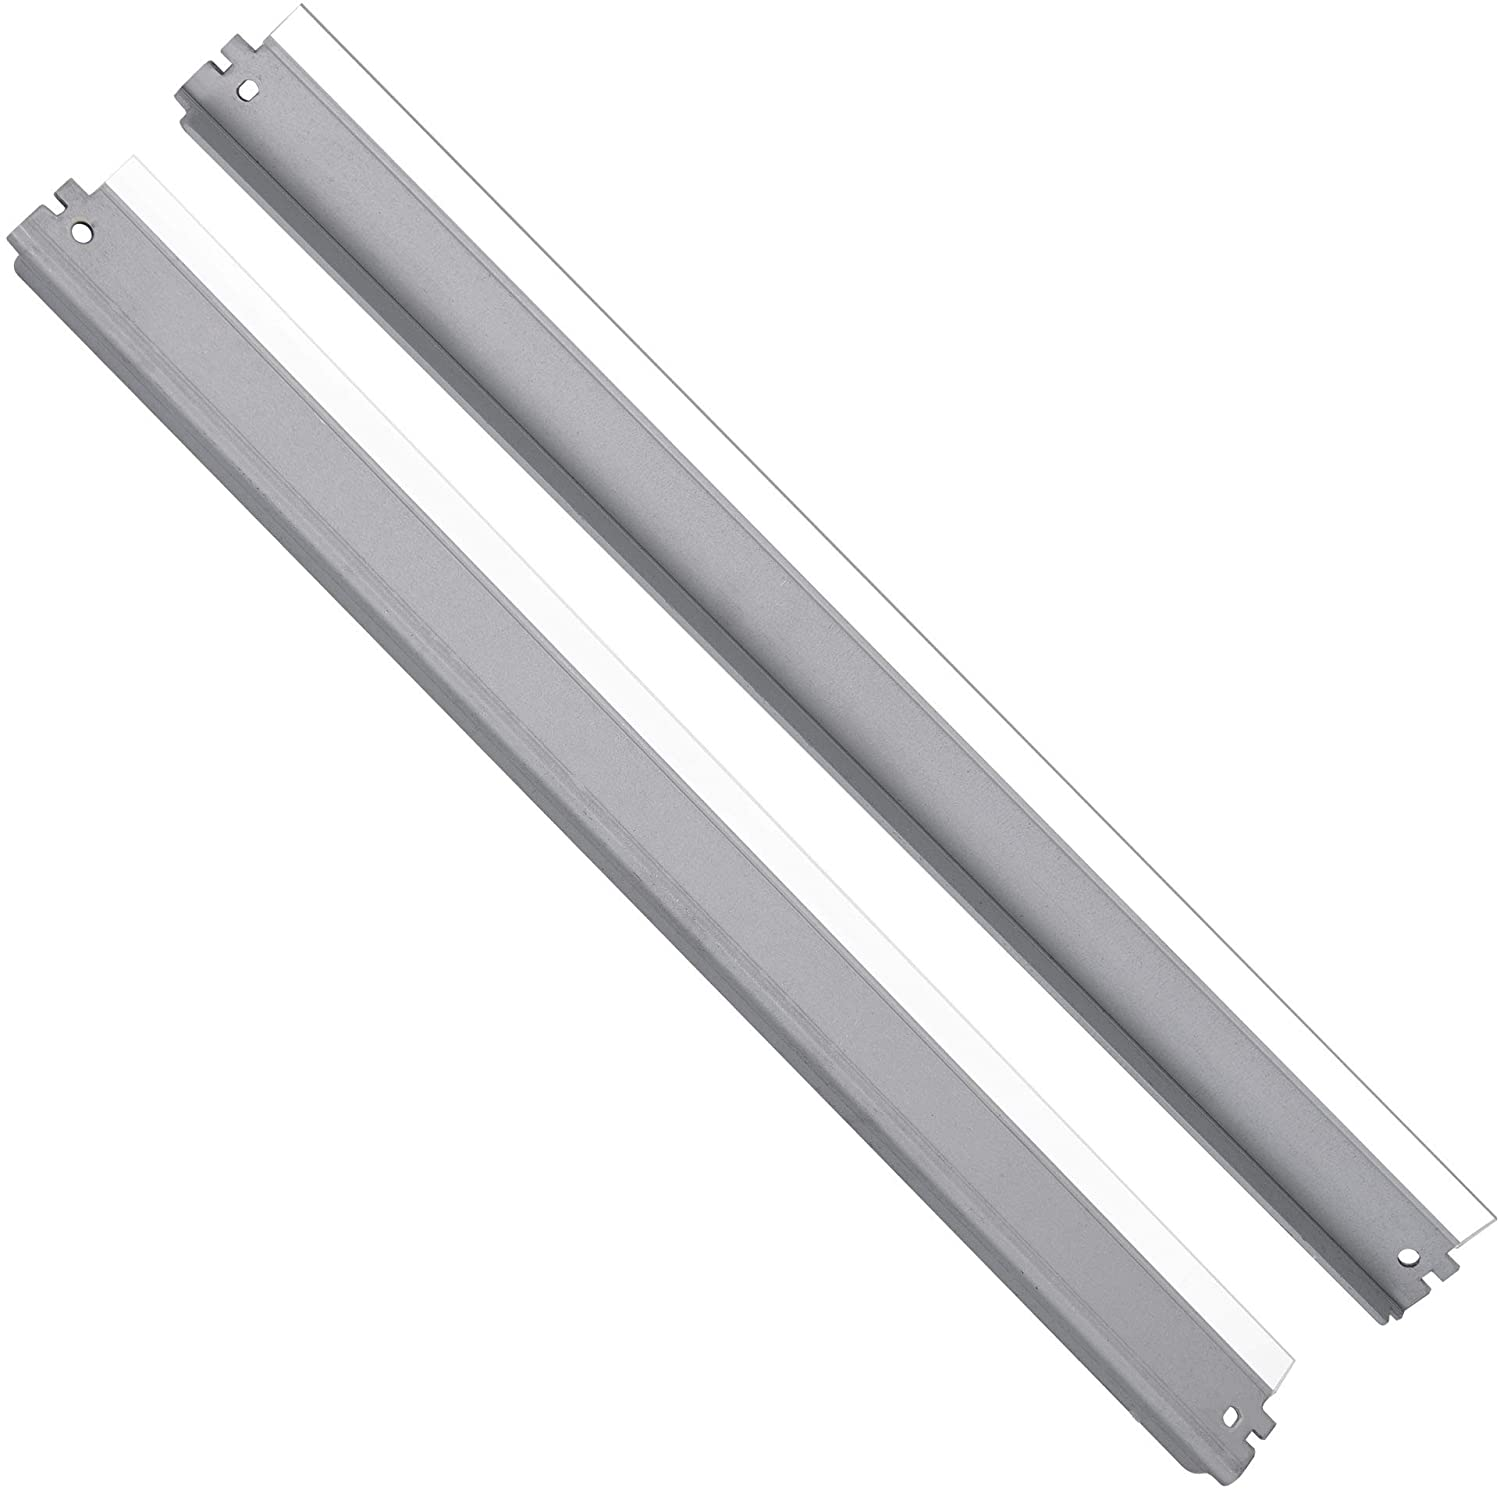 Teamsuung Copier Drum Cleaning Blade Compatible for Canon IR1600 2000 Copier Machine IR 1600 Pack of 2